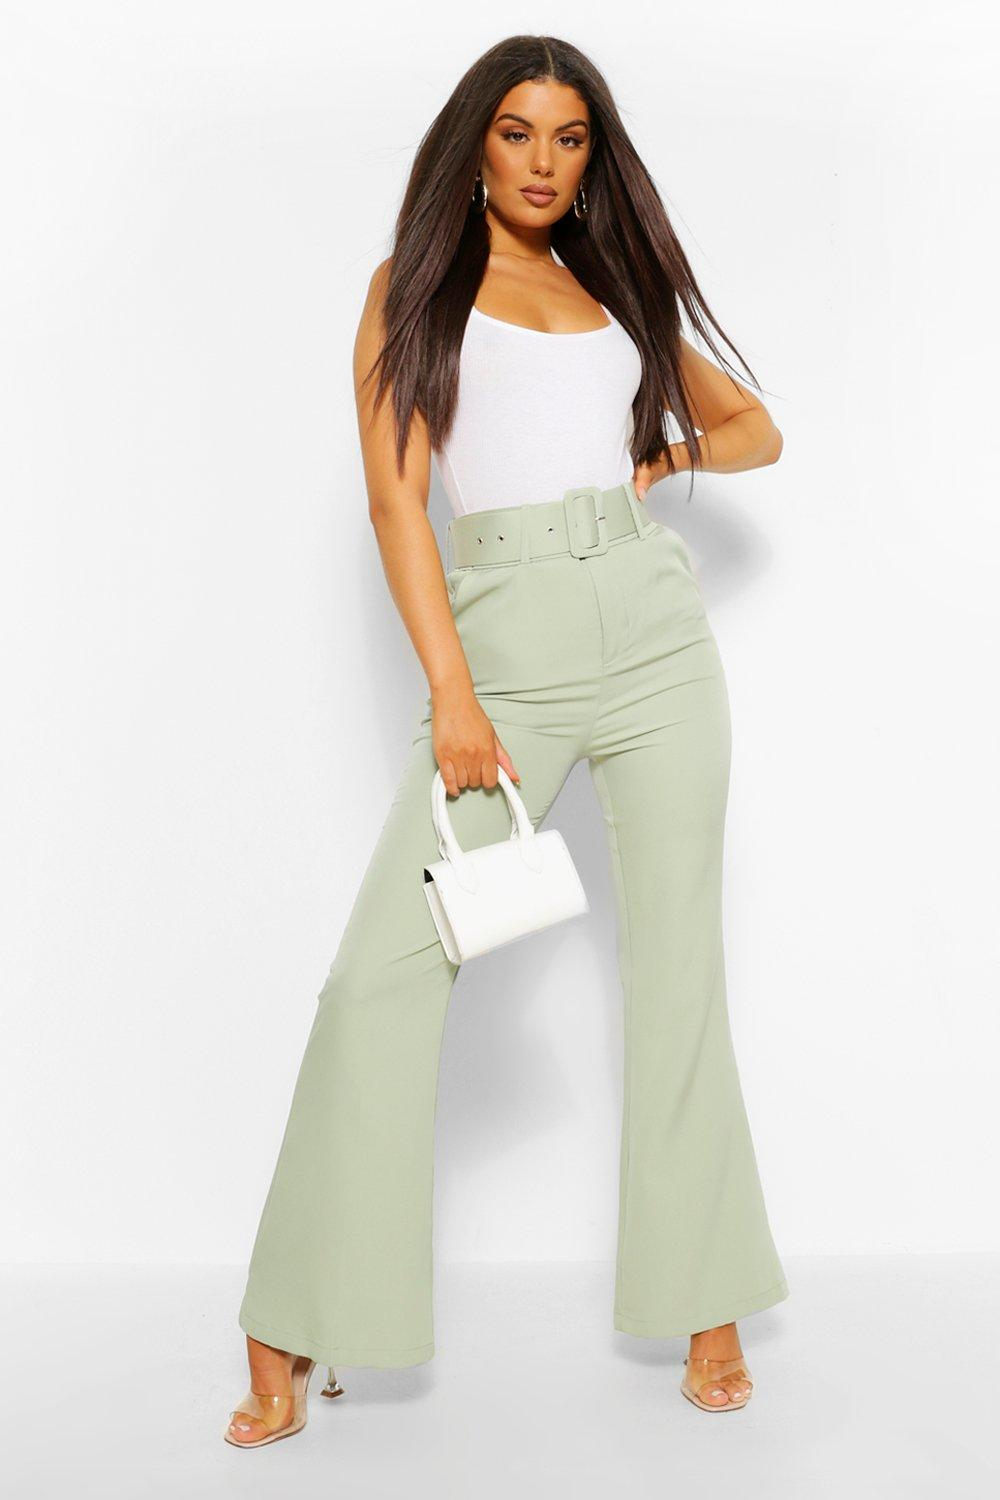 1980s Clothing, Fashion | 80s Style Clothes Womens Self Fabric Belted Kick Flare Tailored Trouser - Green - M $19.00 AT vintagedancer.com